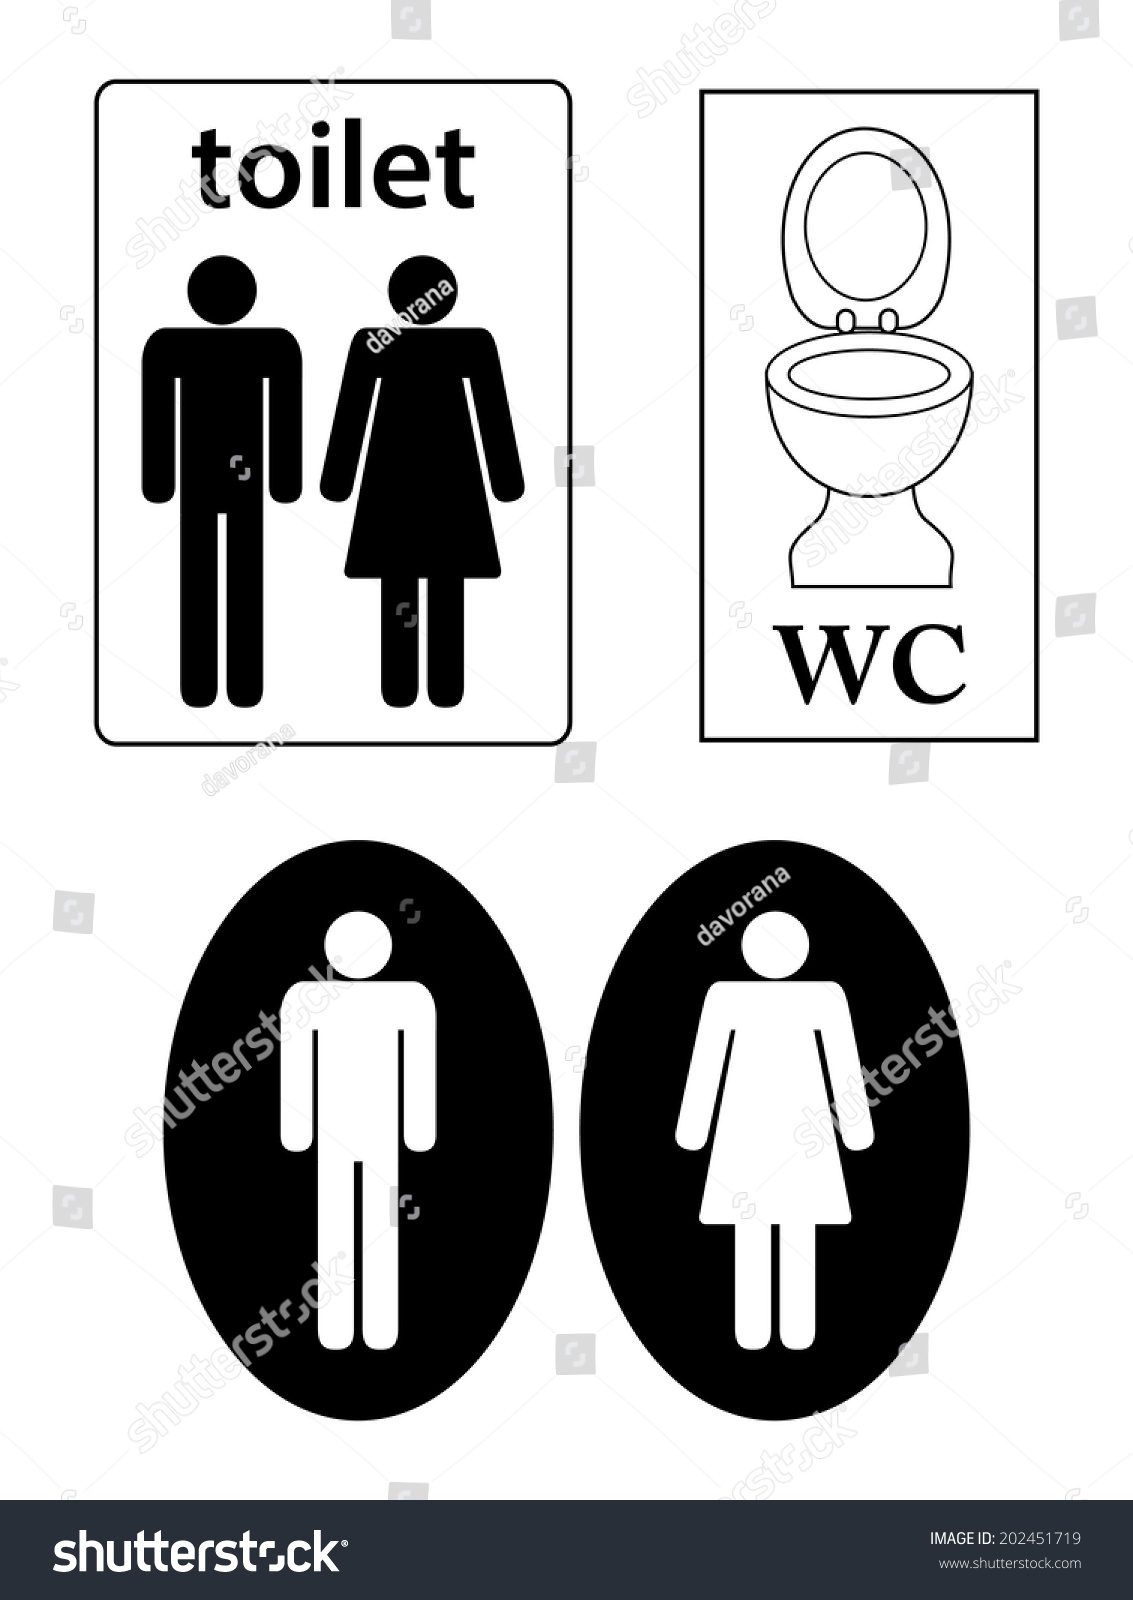 Womens mens toilets wc sign toilet stock vector 202451719 womens and mens toilets wc sign toilet symbol male and female silhouette and biocorpaavc Choice Image